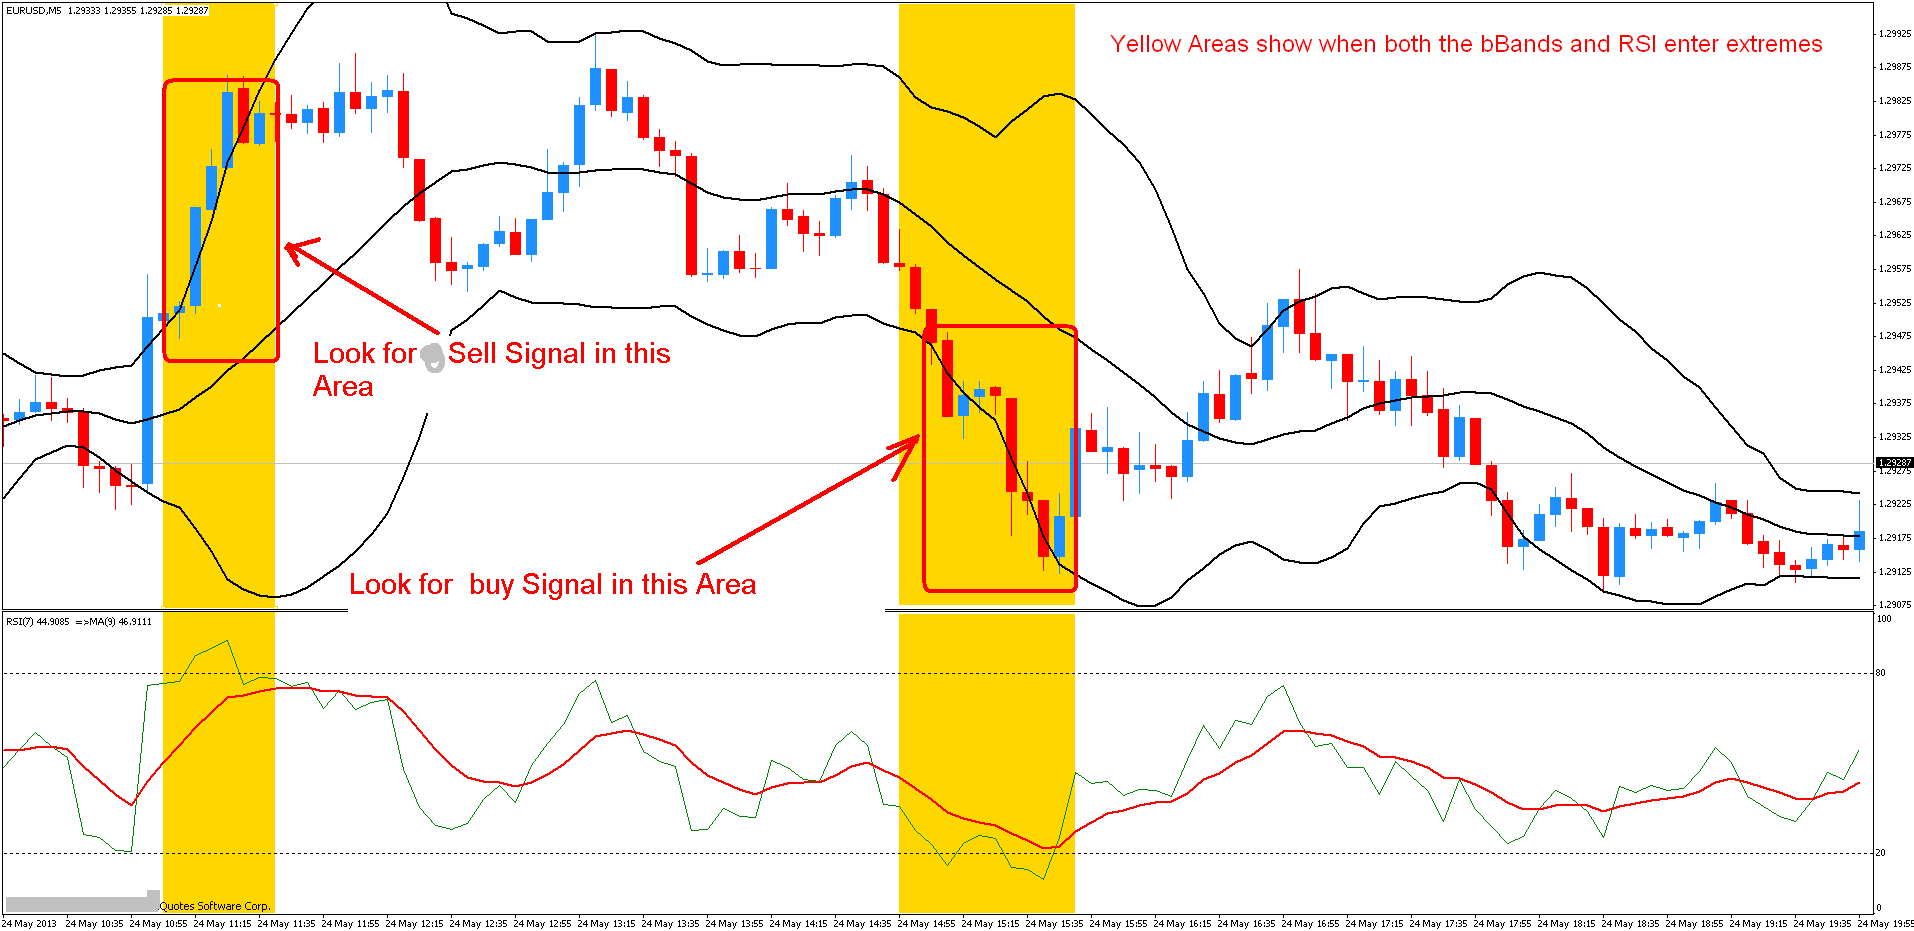 Using Bollinger Bands to Improve the RSI 5 Minute System